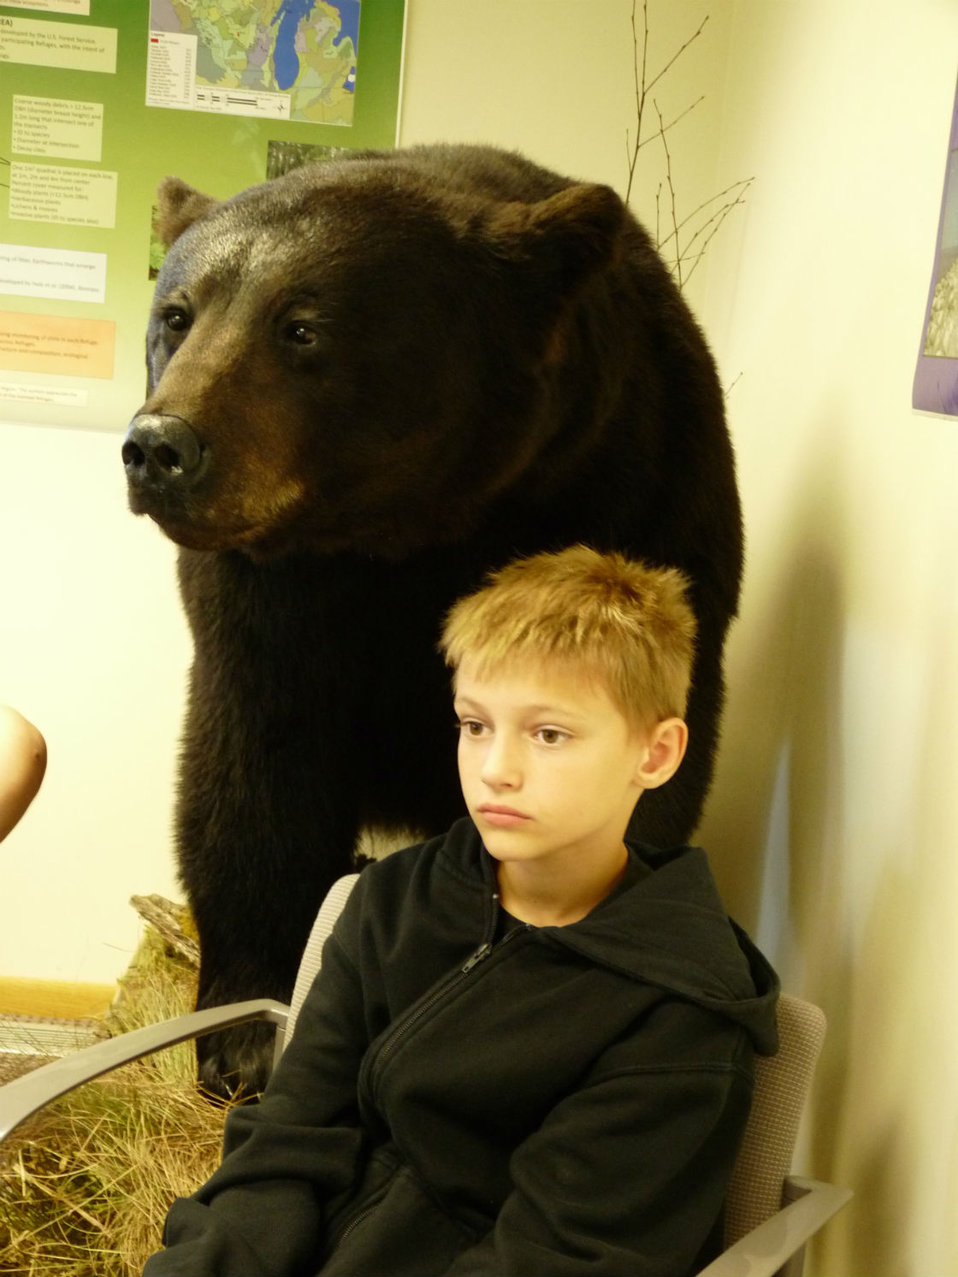 Grant Grams with Black Bear